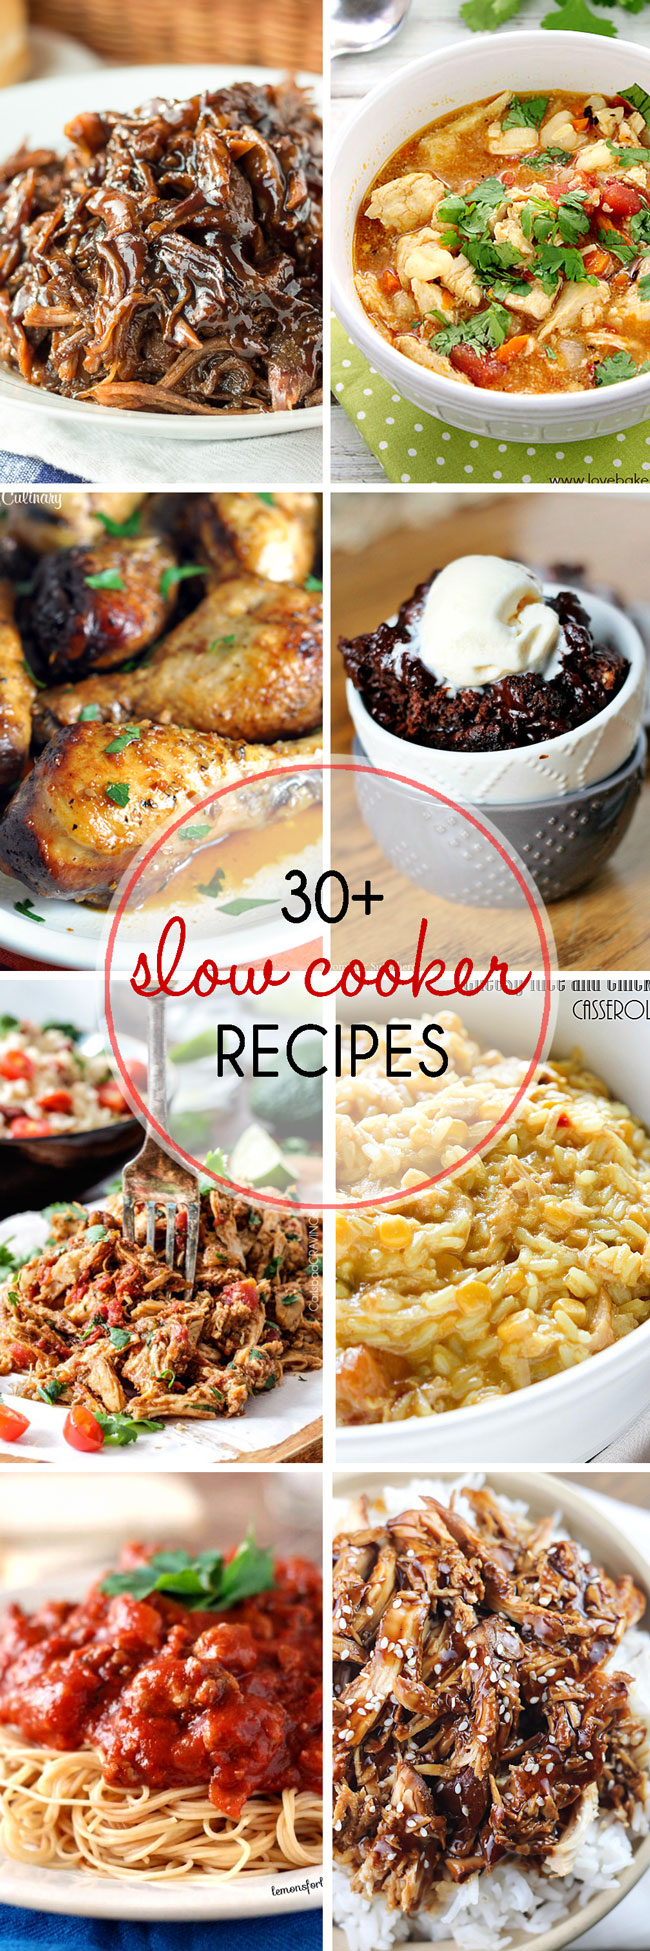 Be sure to save these 30+ slow cooker recipes because you'll want to make them all.